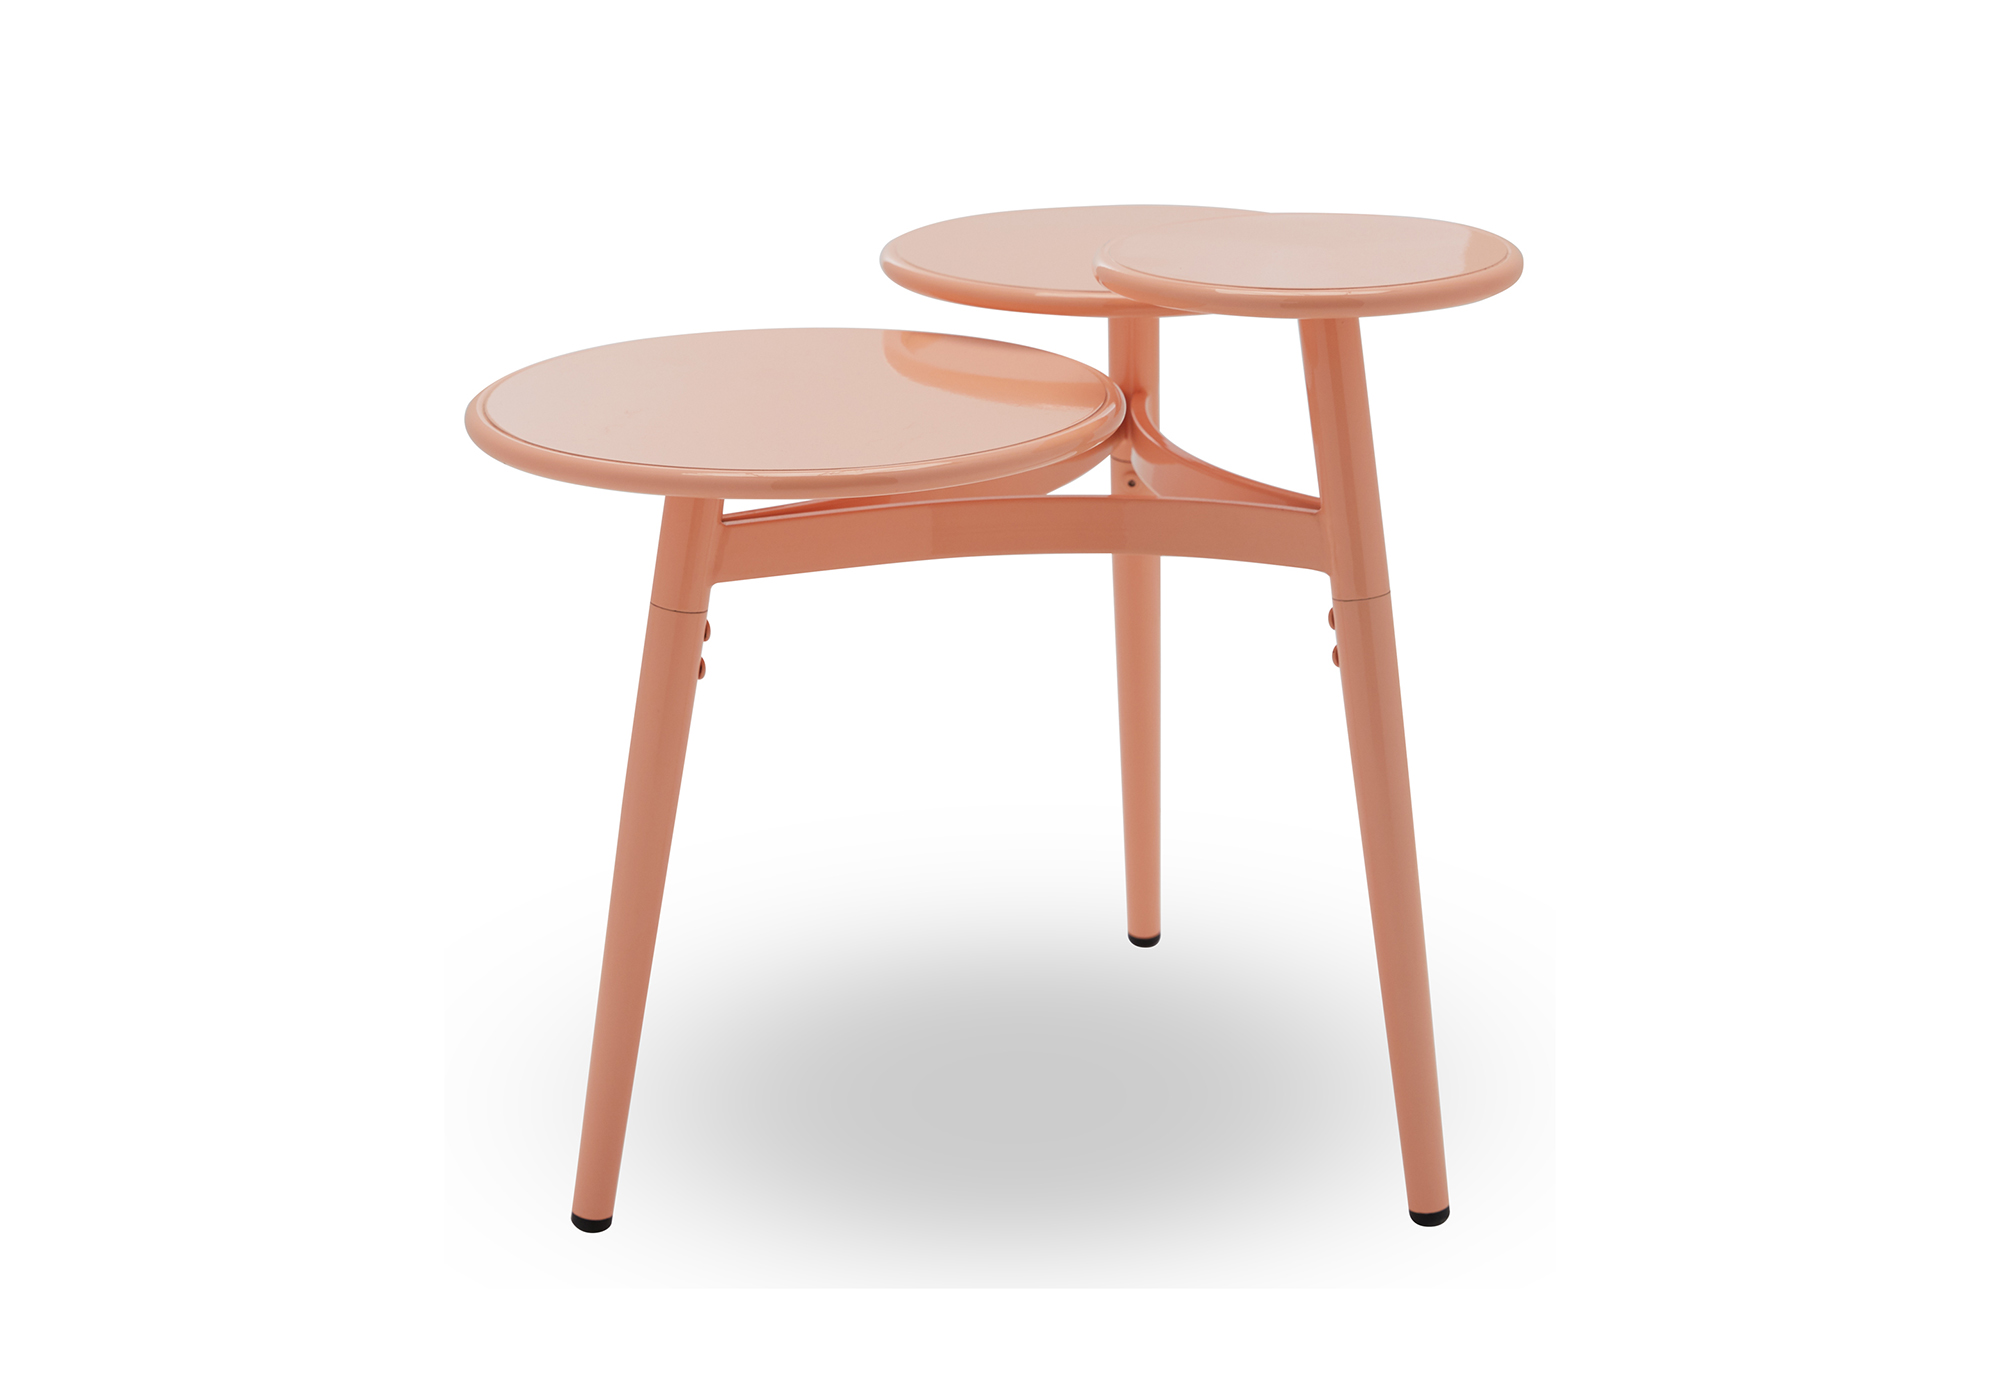 blush-accent-table-flower-home-walmart.jpg